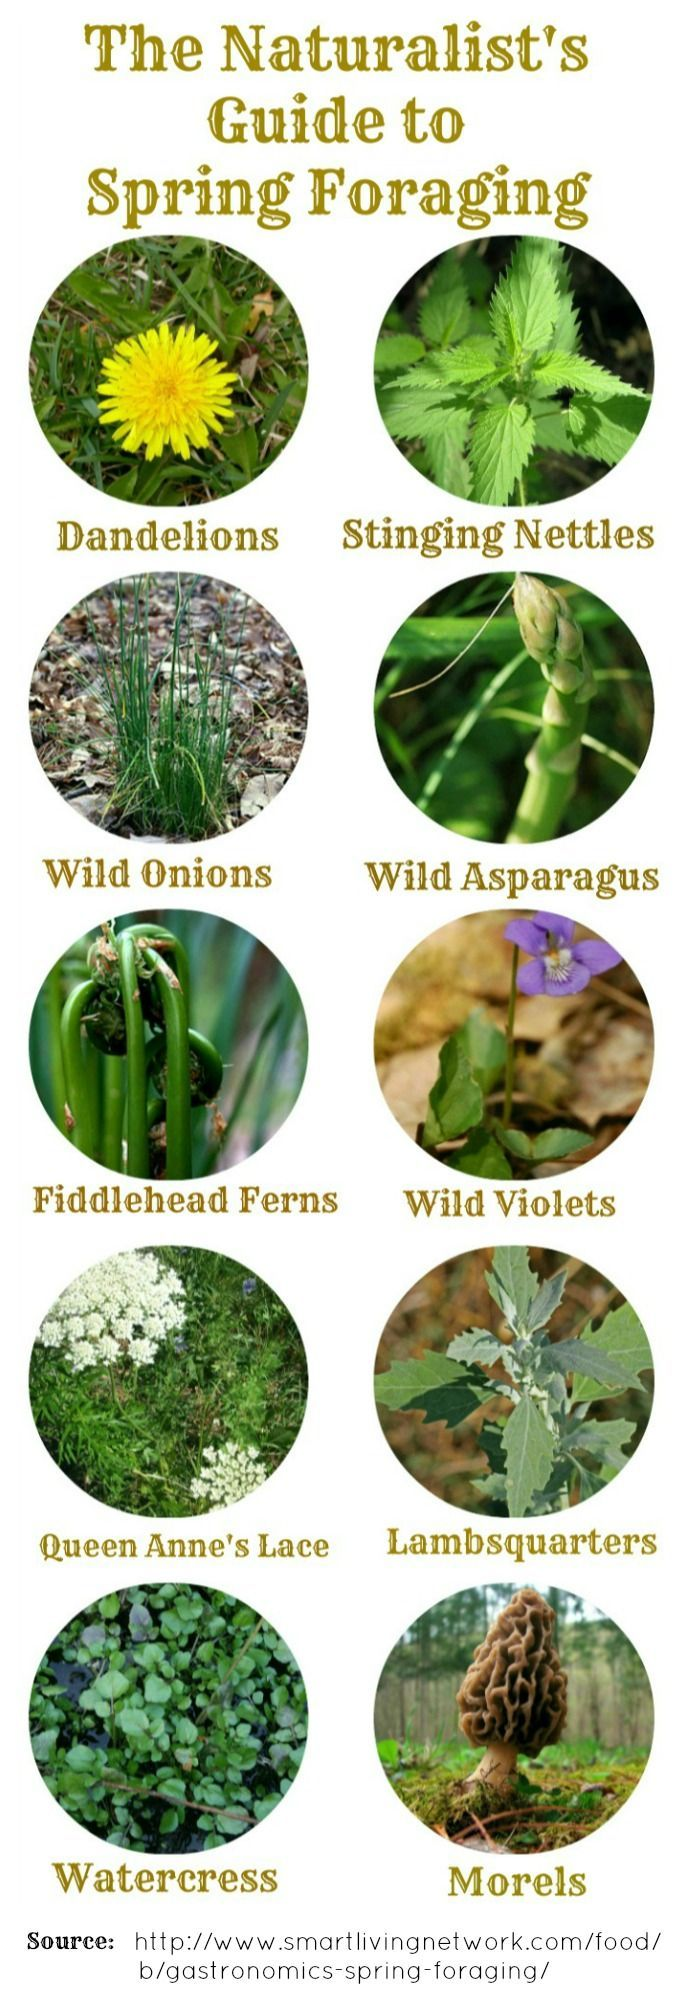 Common Wild Foods of Spring - Foraging Guide and Recipes | herbology, herbalism, healing plants, herbal medicine